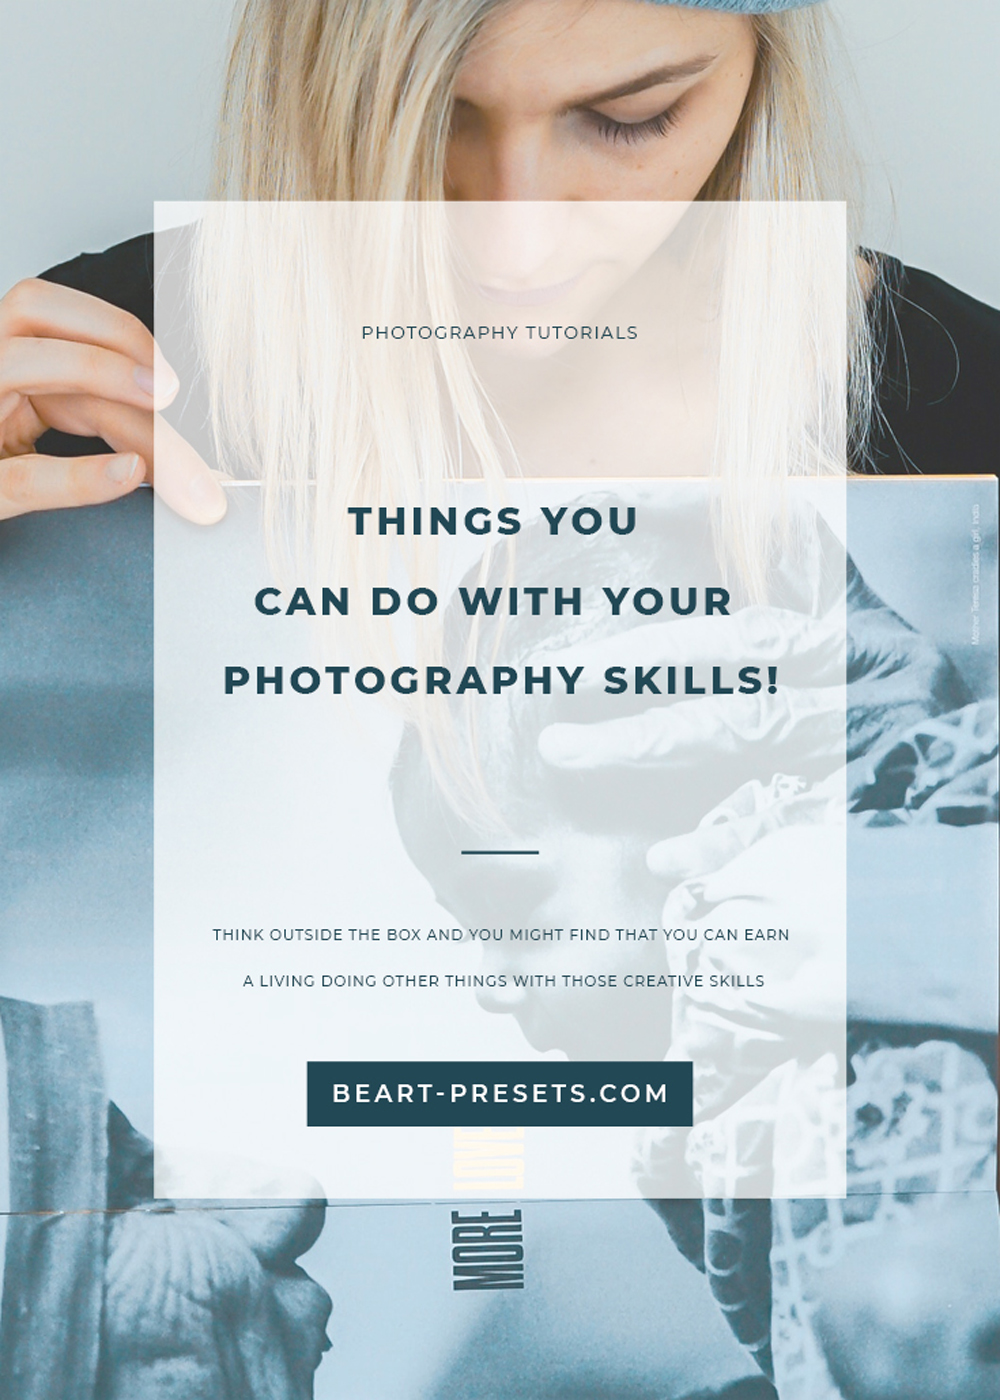 YOUR PHOTOGRAPHY SKILLS